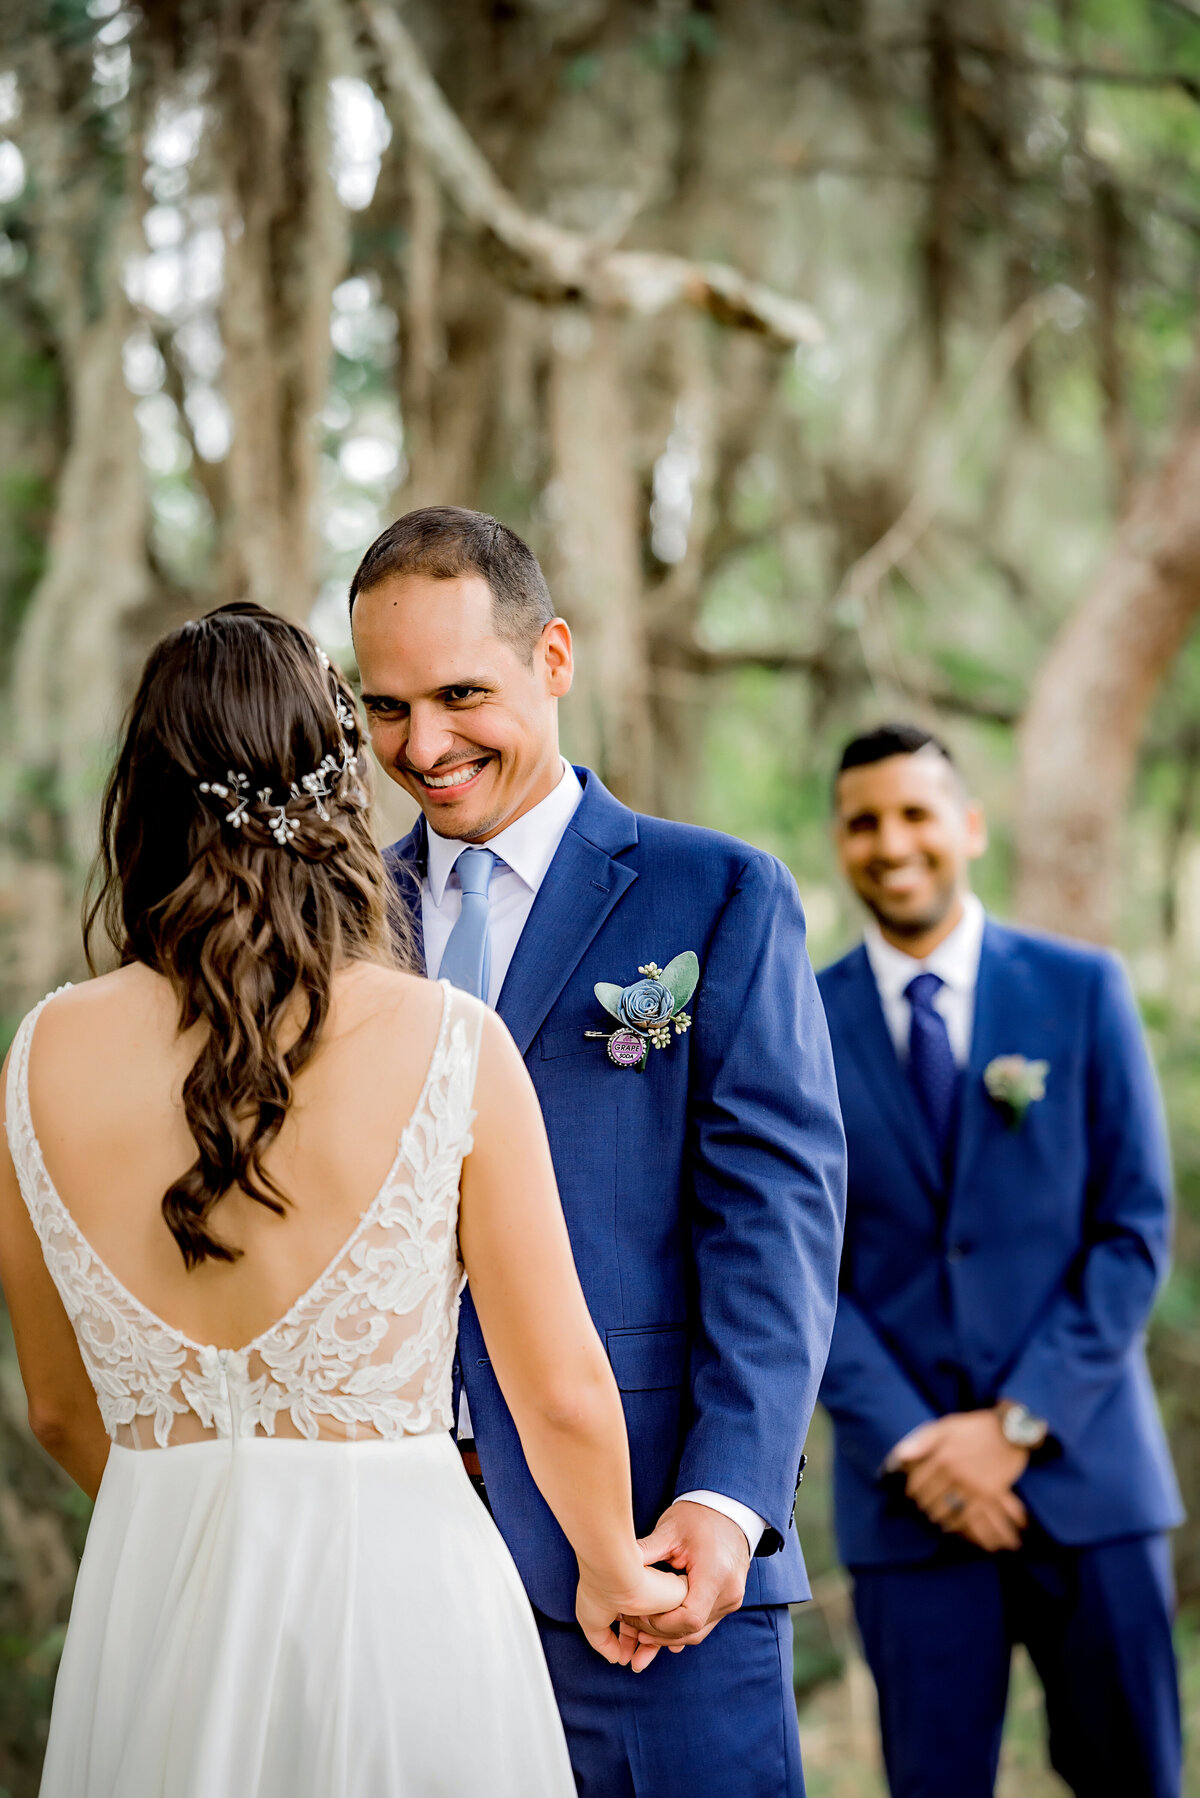 SH-Wedding-Photographerfavorite-37